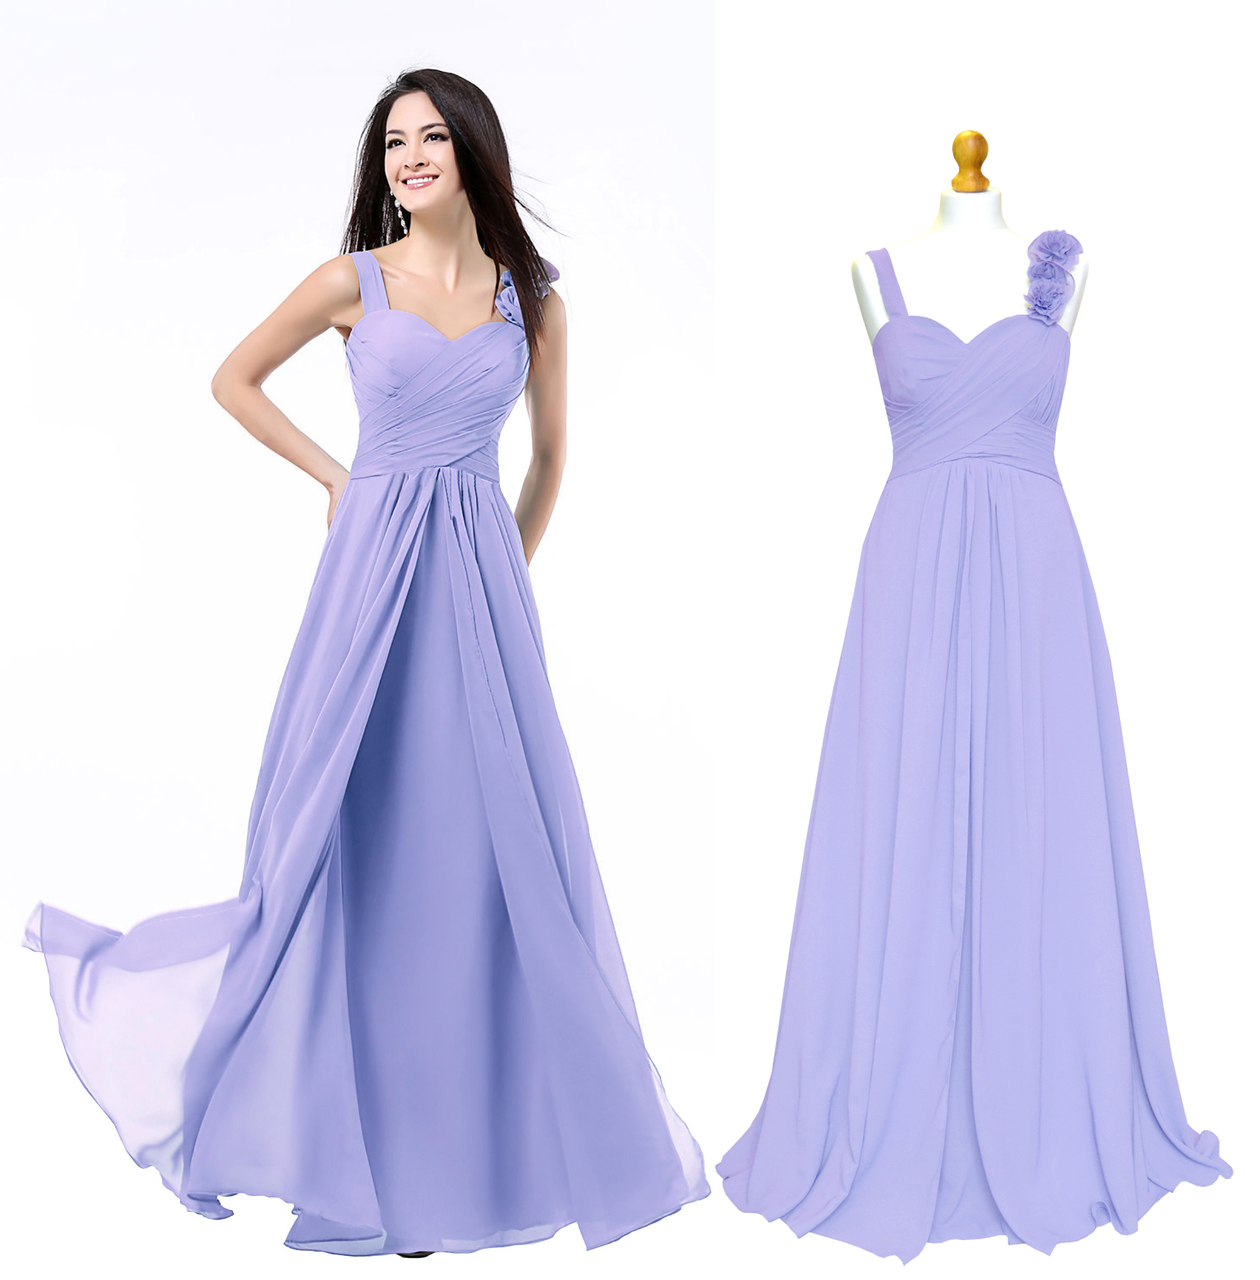 9f1fcbaf00902 ... Lilac Dusky Rose Grey Coral Teal New Formal Long Evening Ball Gown  Party Prom Bridesmaid Dress Size 6 - 24